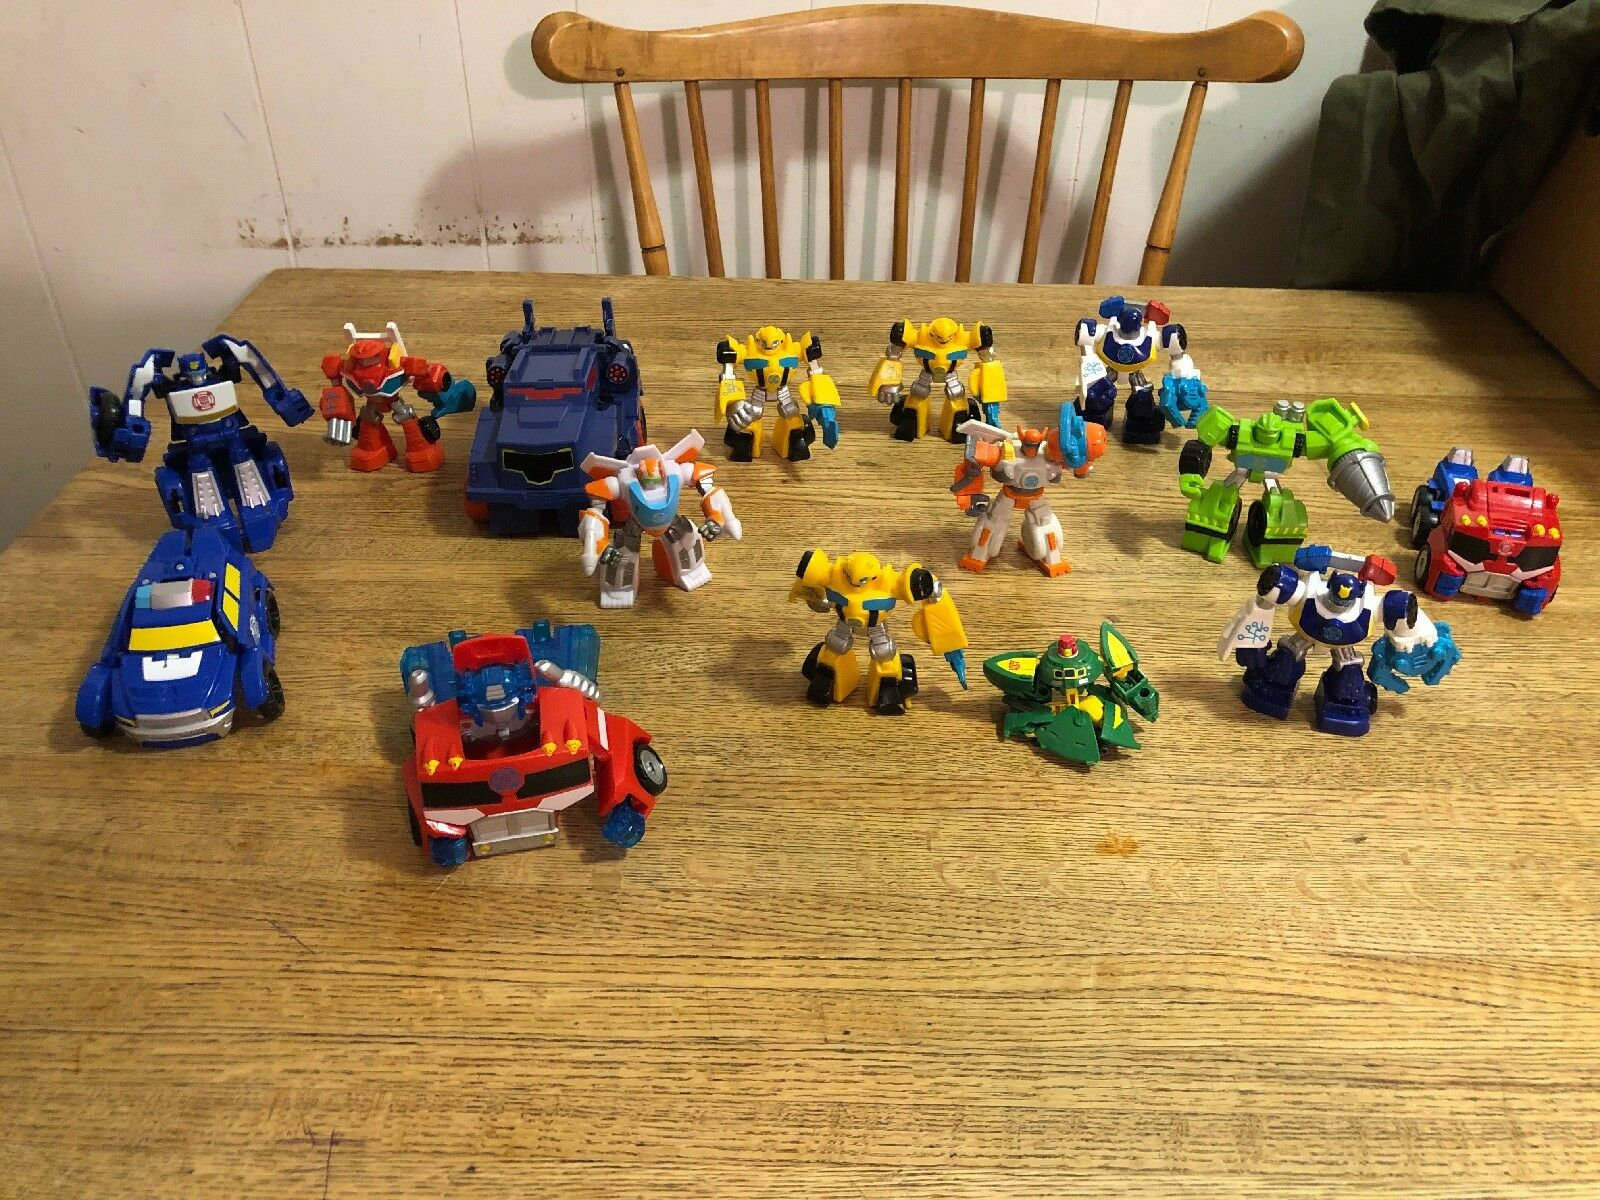 15 Figures And Vehicles 2016 Hasbro Transformer Lot Great Condition